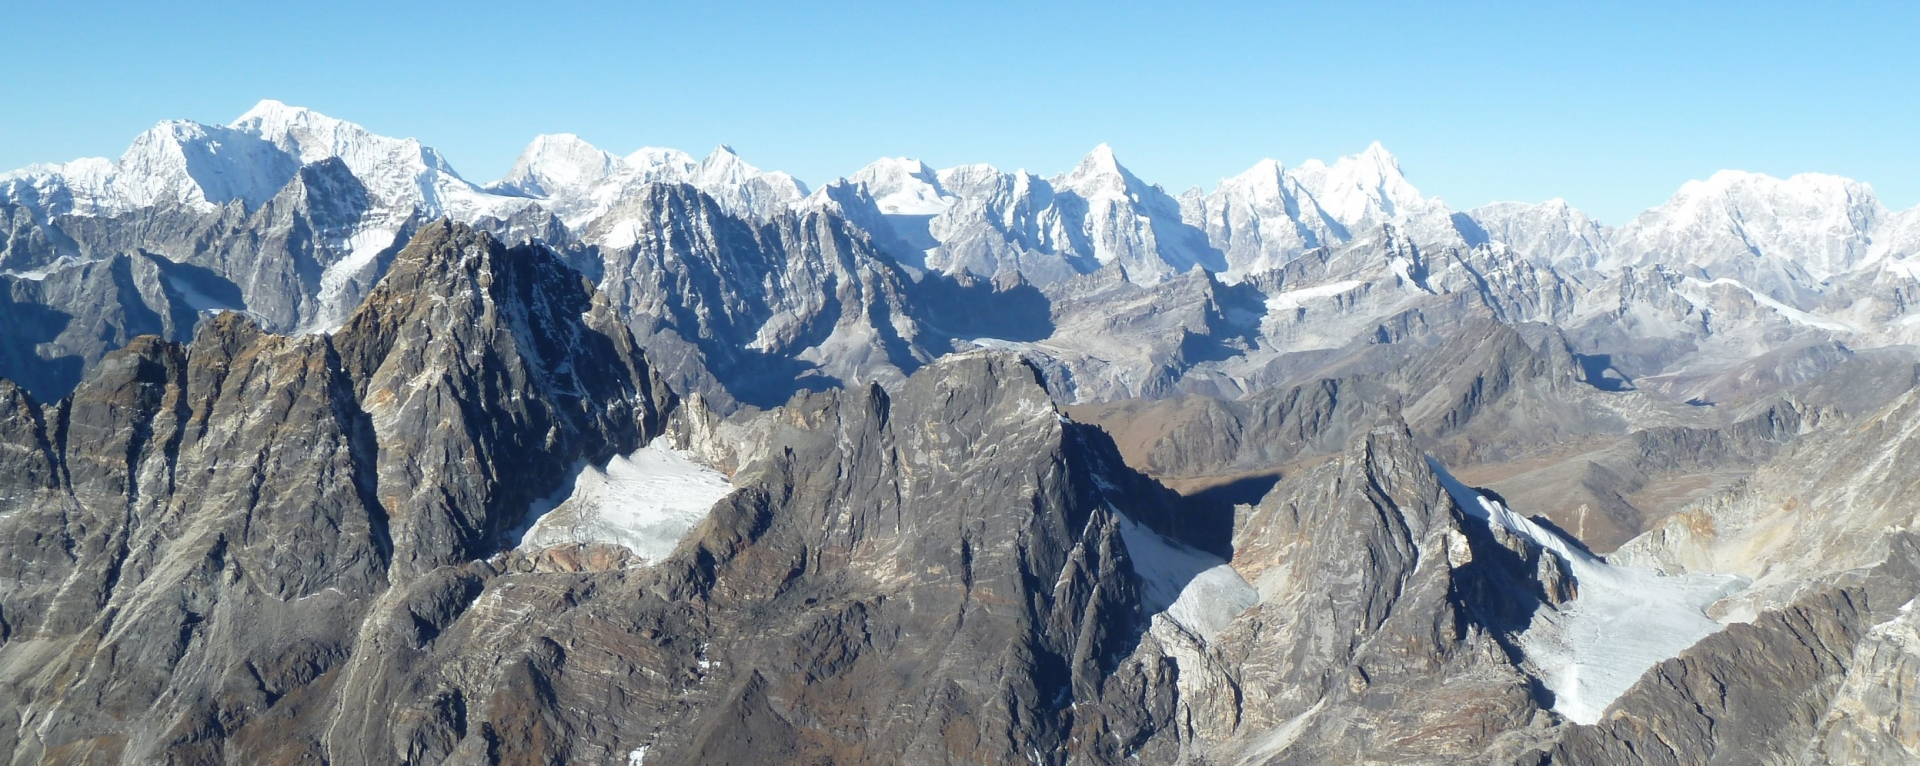 Mountain ranges seen from Top of Lobuche peak(6119m).